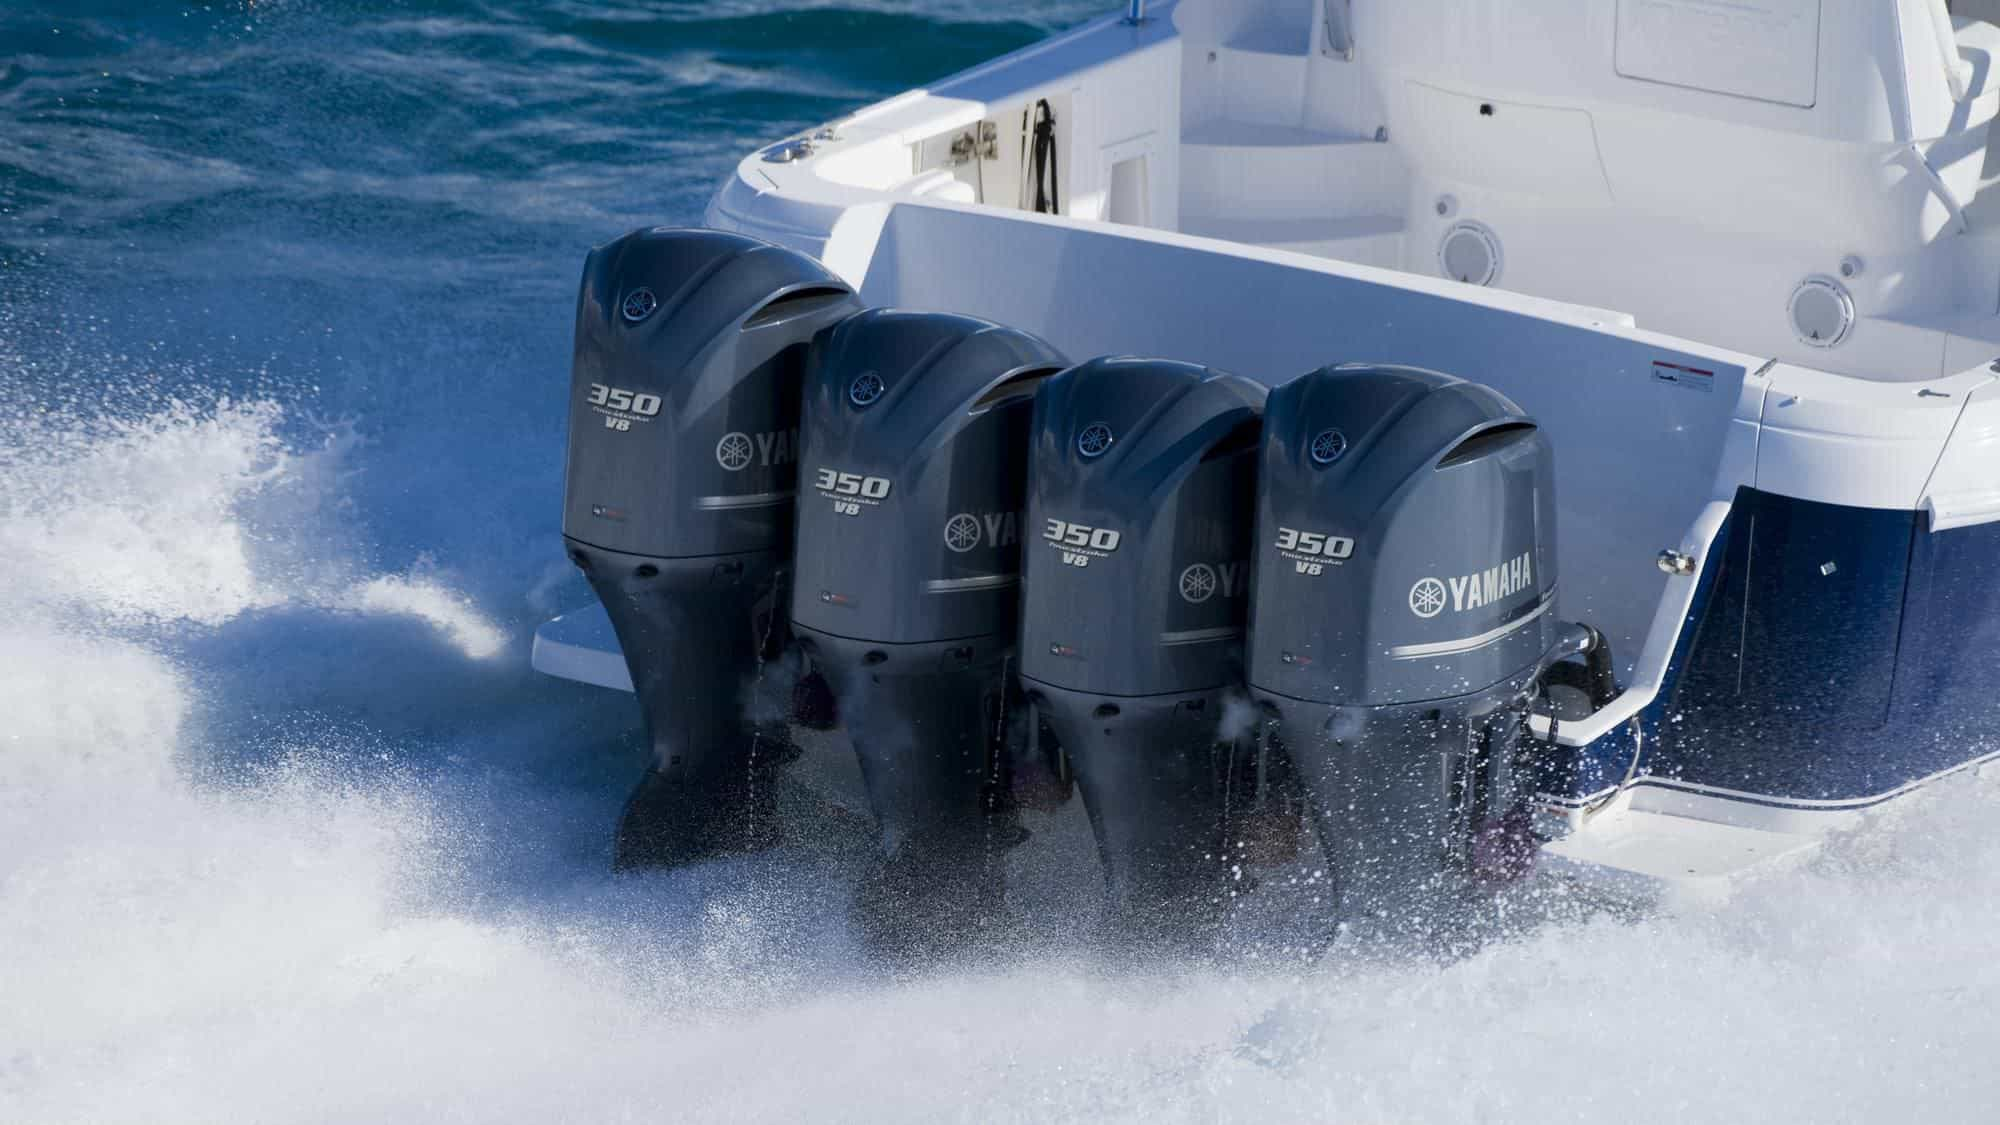 Boats-for-sale-at-Plett-Yamaha-044-533-1443